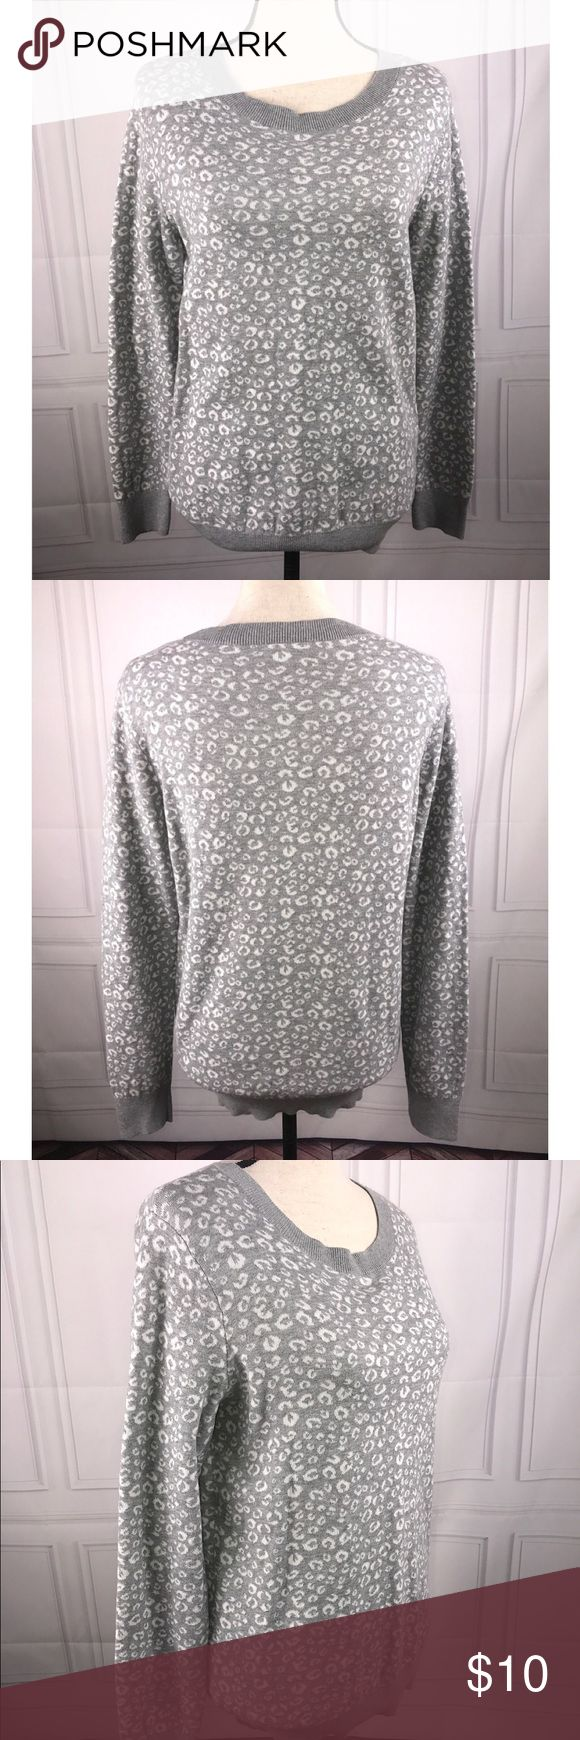 Ann Taylor Loft Factory Medium Gray White Sweater Ann Taylor Loft Factory Medium Gray White Animal Print Long Sleeve Sweater  See pictures for additional details.  Very good used condition  See pictures for flaws (if any), fabric content, cleaning instructions and measurements.  Thank you for looking at my store! LOFT Sweaters Crew & Scoop Necks